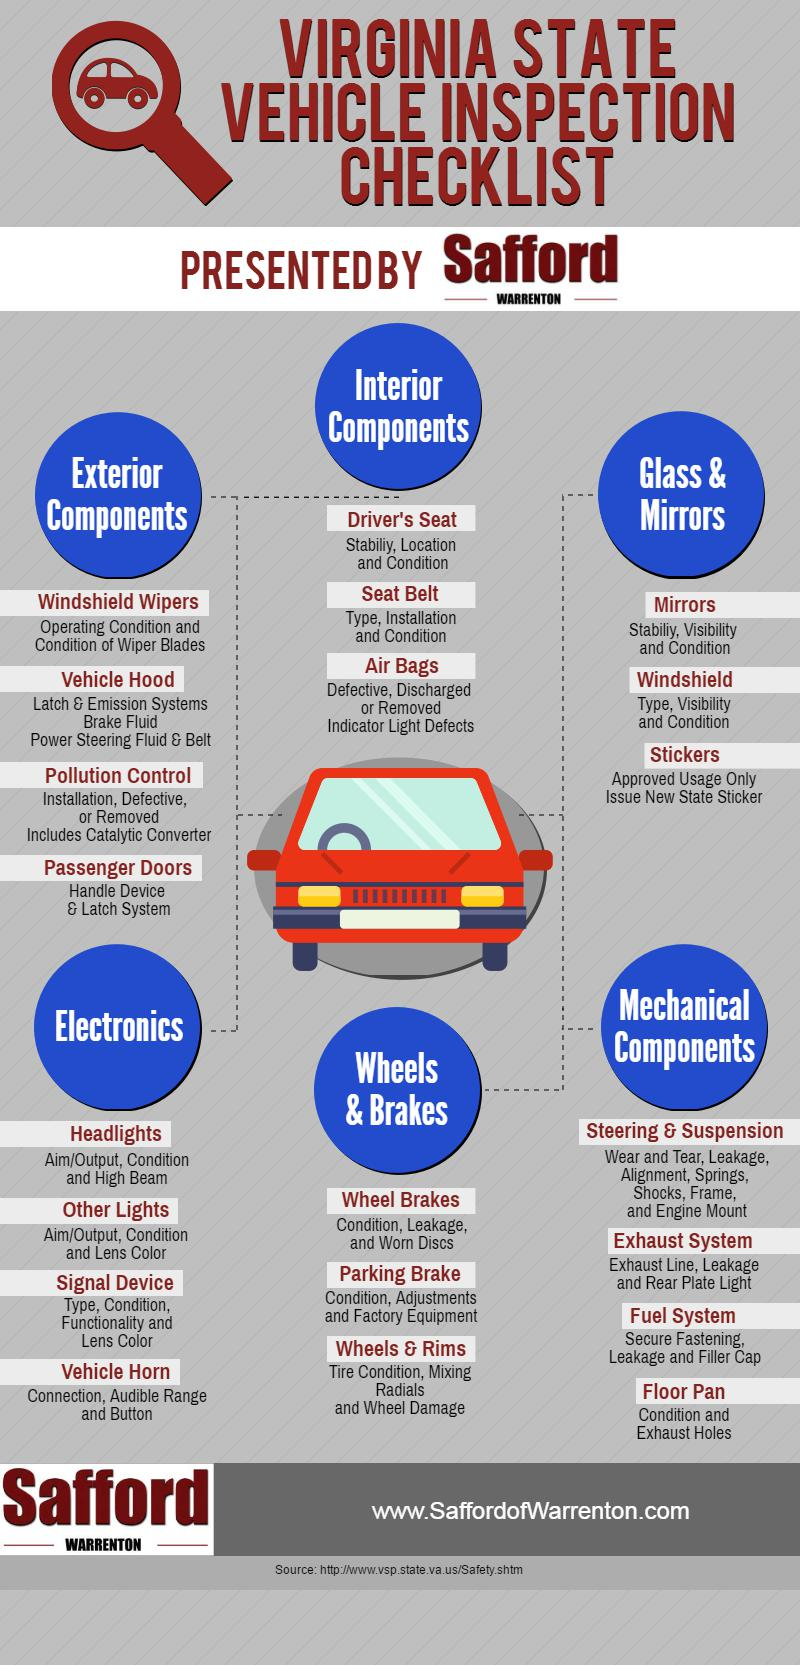 Va state car inspection guidelines